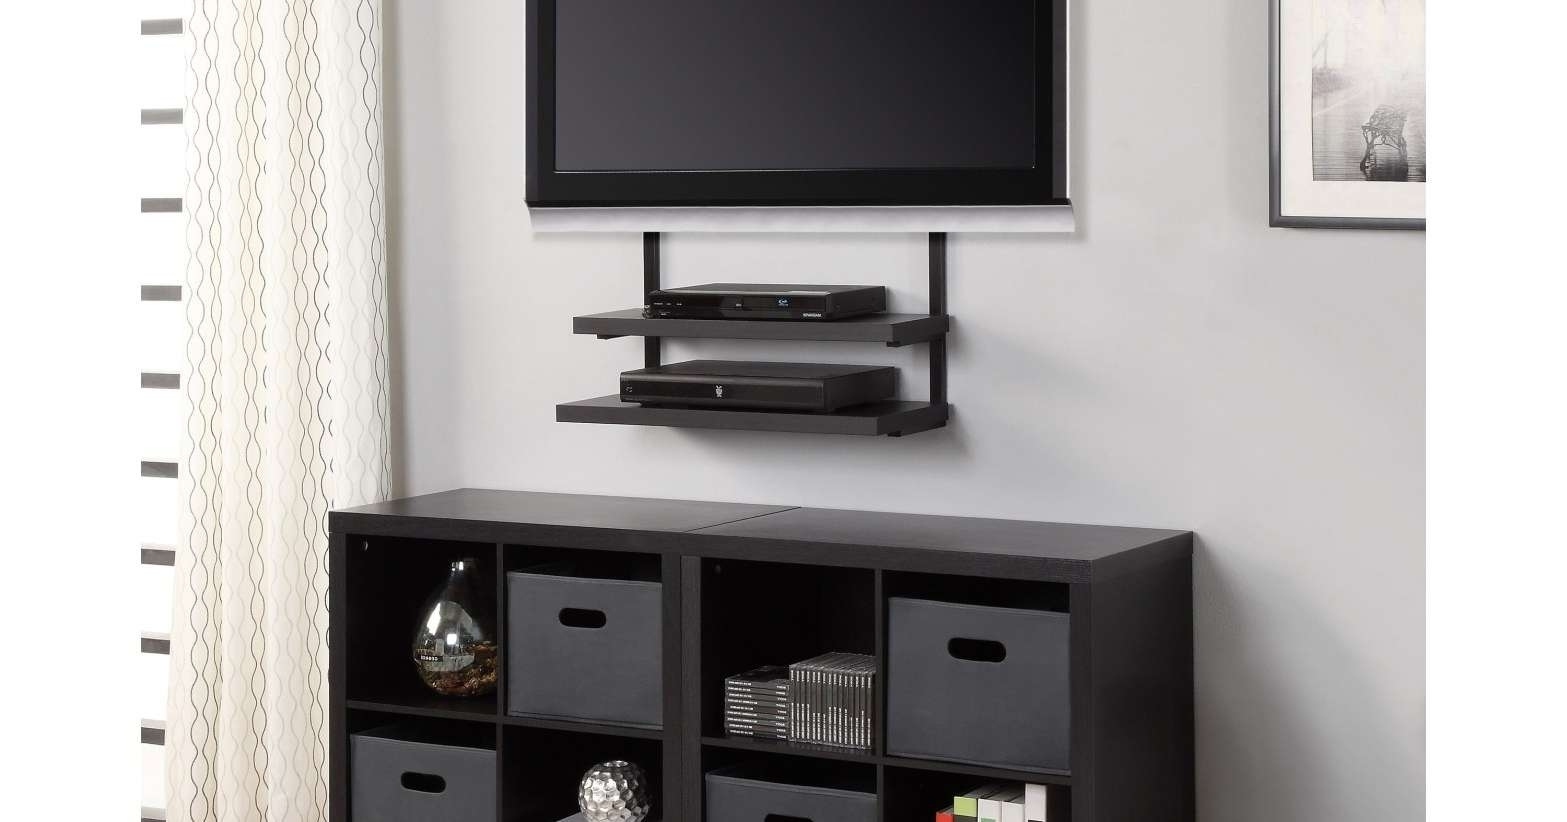 Tv : 70 Inch Tv Stand Awesome 44 Swivel Black Glass Tv Stands Pertaining To Swivel Black Glass Tv Stands (View 7 of 15)